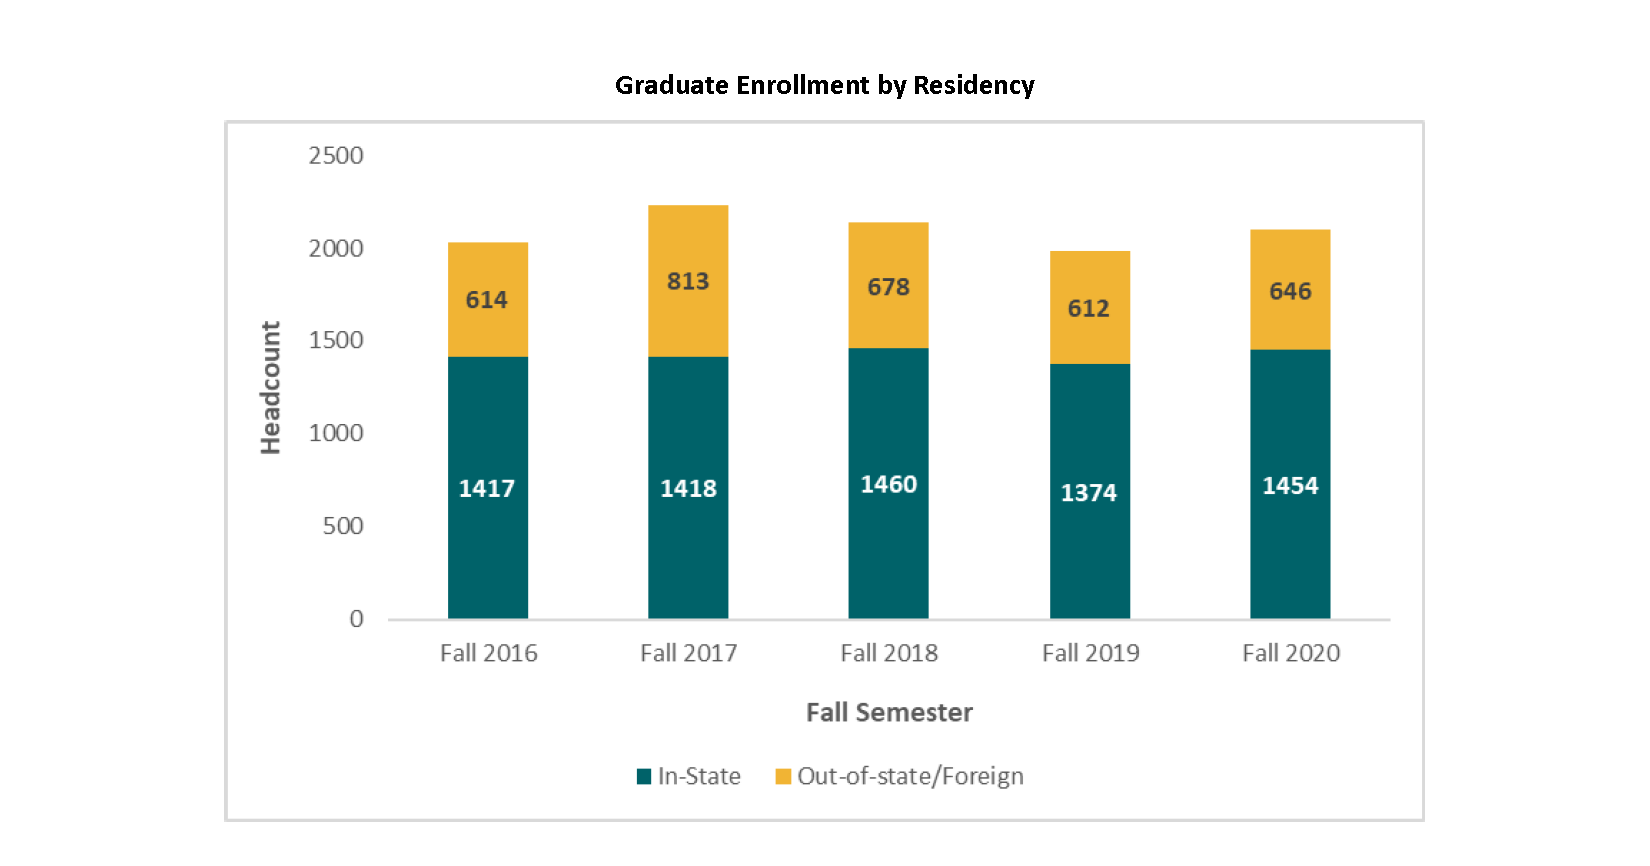 Graduate Enrollment by Residency